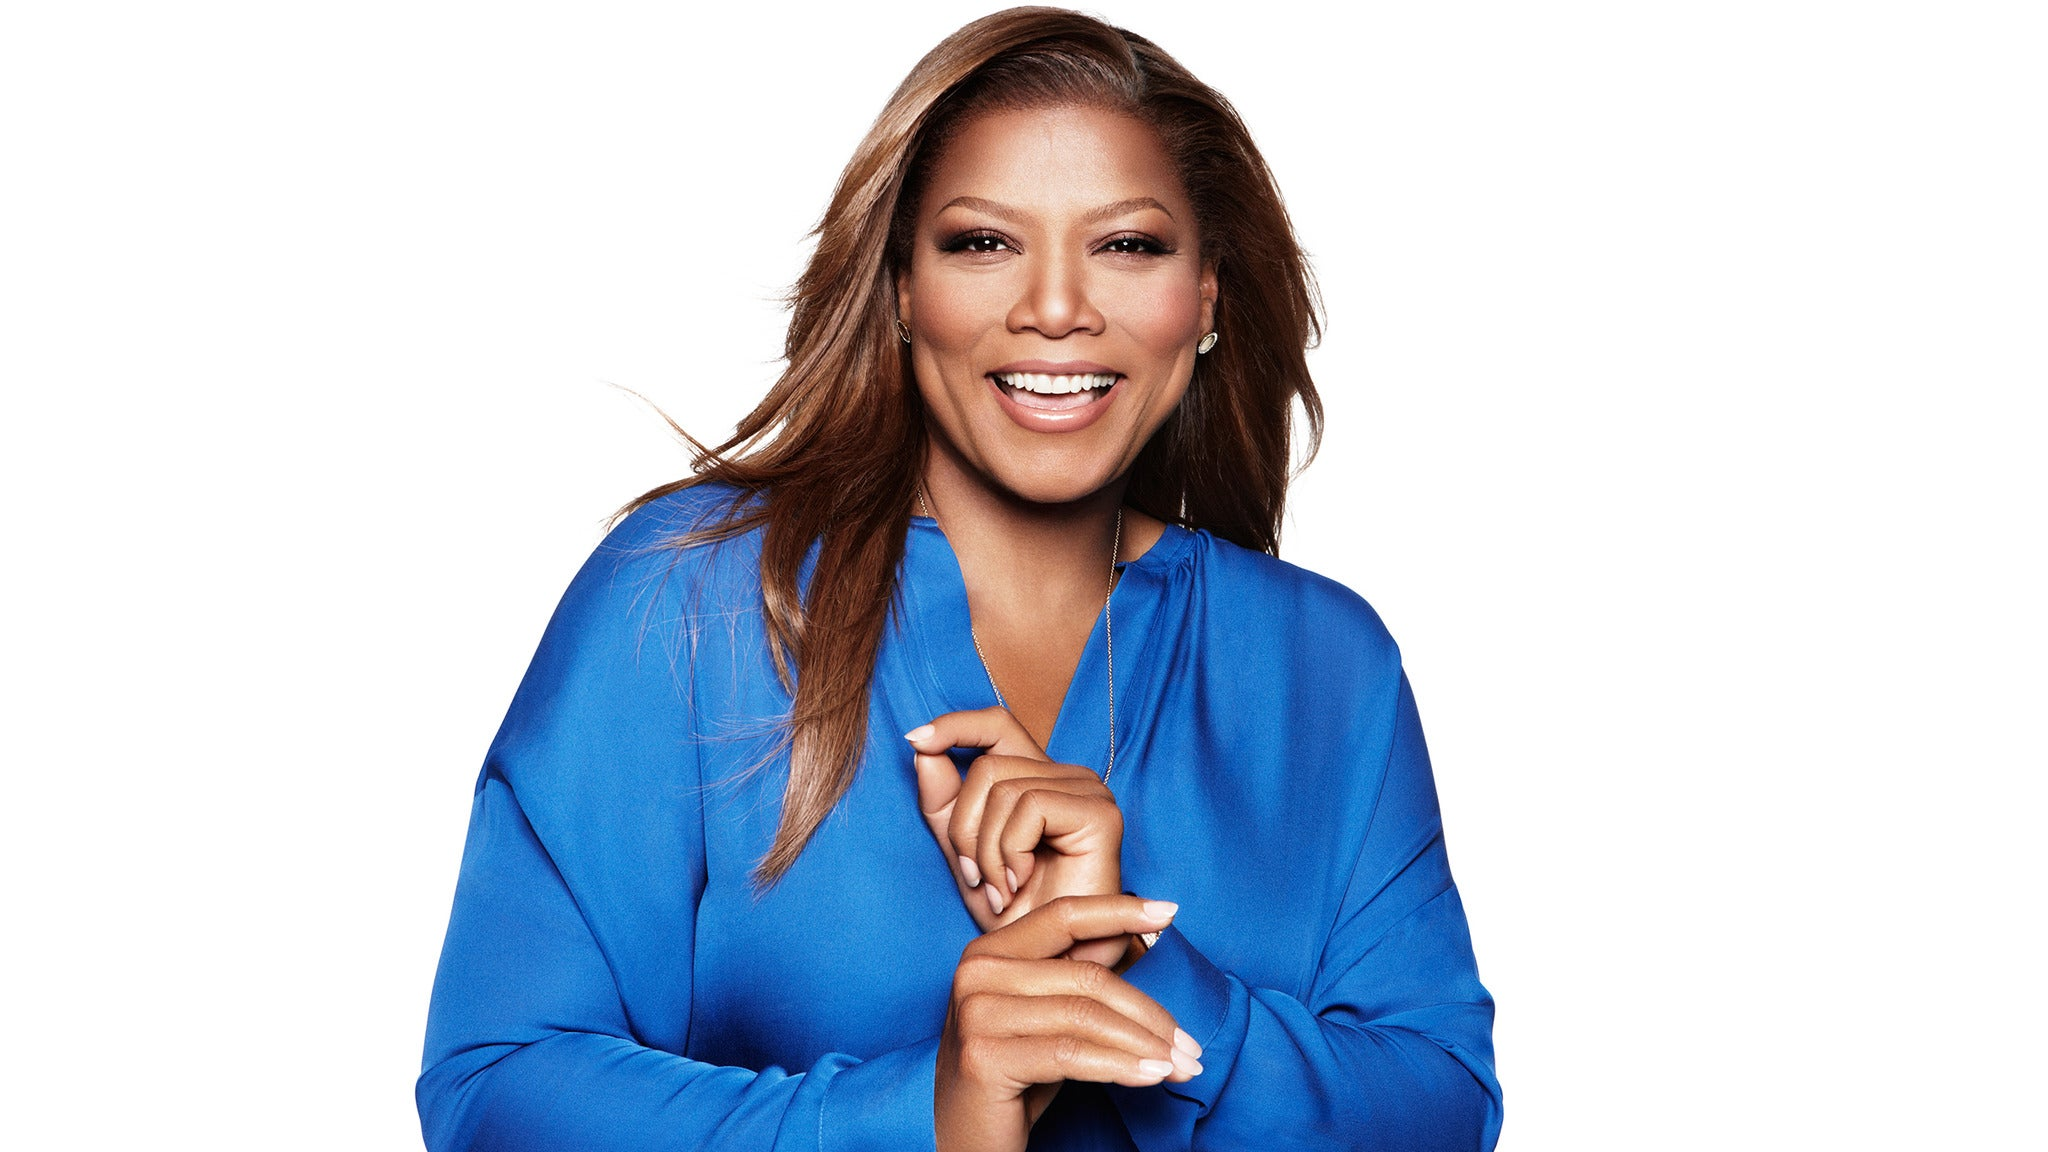 Queen Latifah at Harrah's Resort SoCal - The Events Center - Valley Center, CA 92082